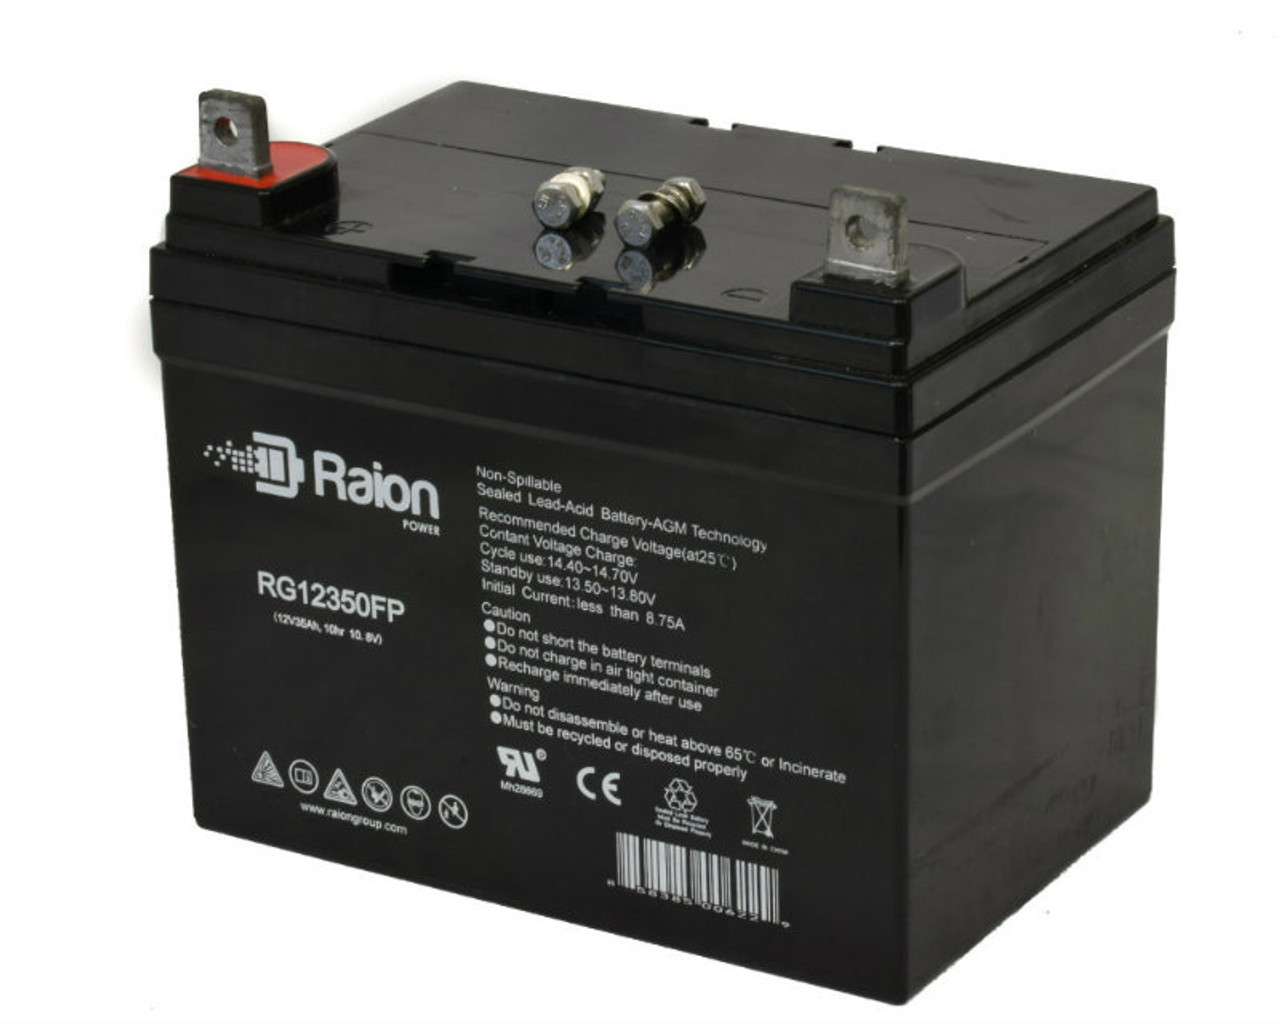 Raion Power RG12350FP Replacement Wheelchair Battery For Merits Pioneer 1 S143 (1 Pack)